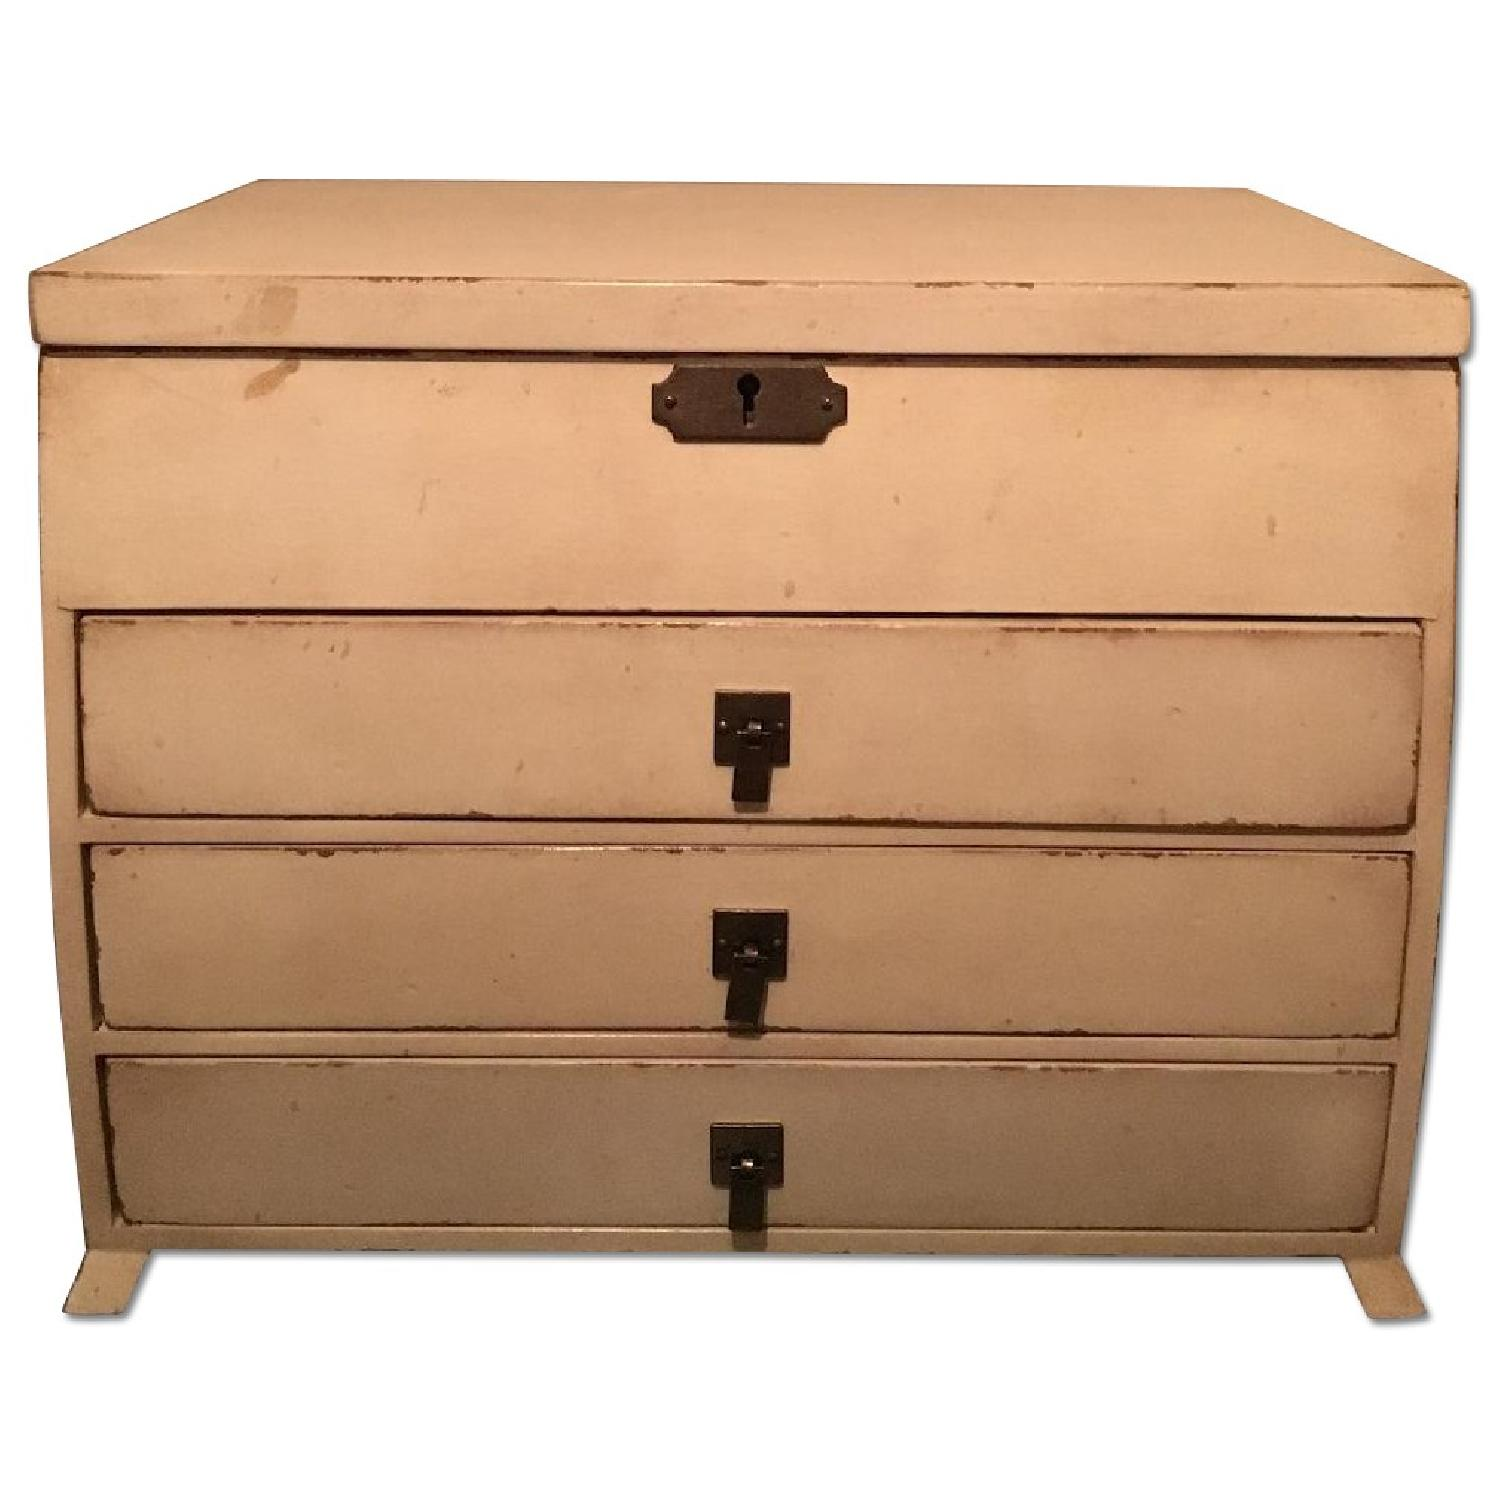 Pottery Barn Emmett Cream Jewelry Dresser